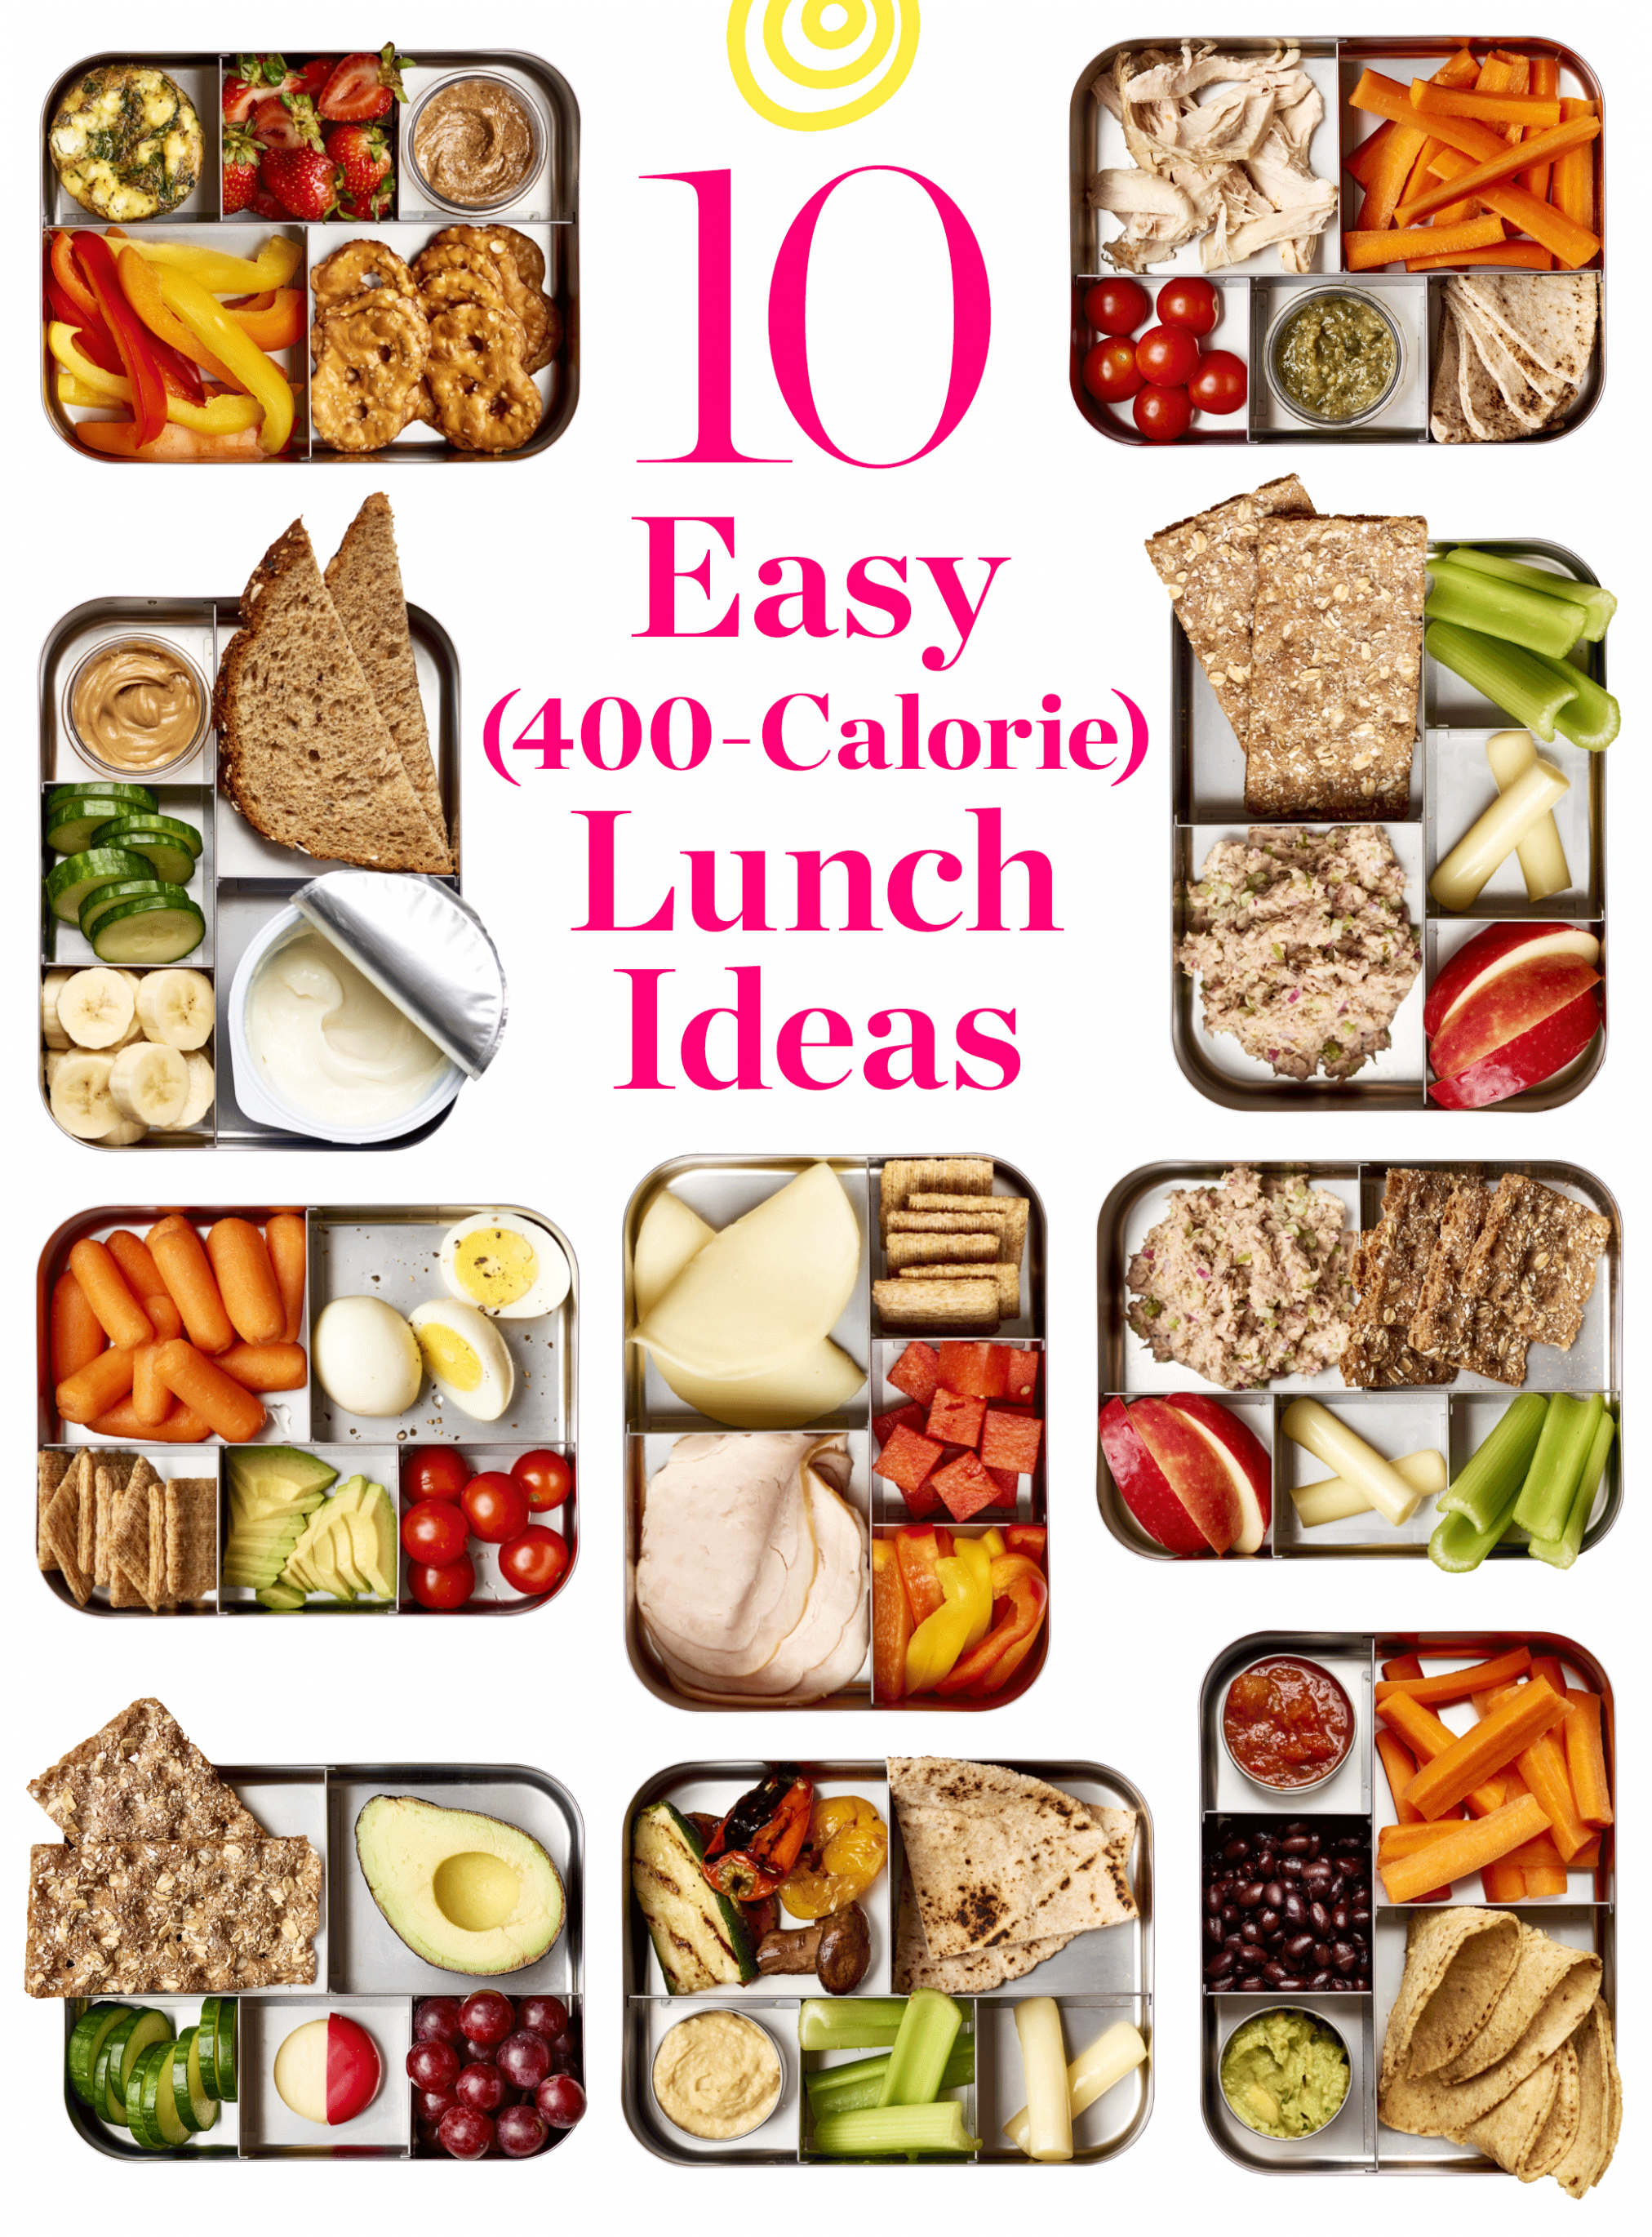 11 Easy Lunch Ideas Under 11 Calories | Kitchn - Easy Recipes Low Calorie